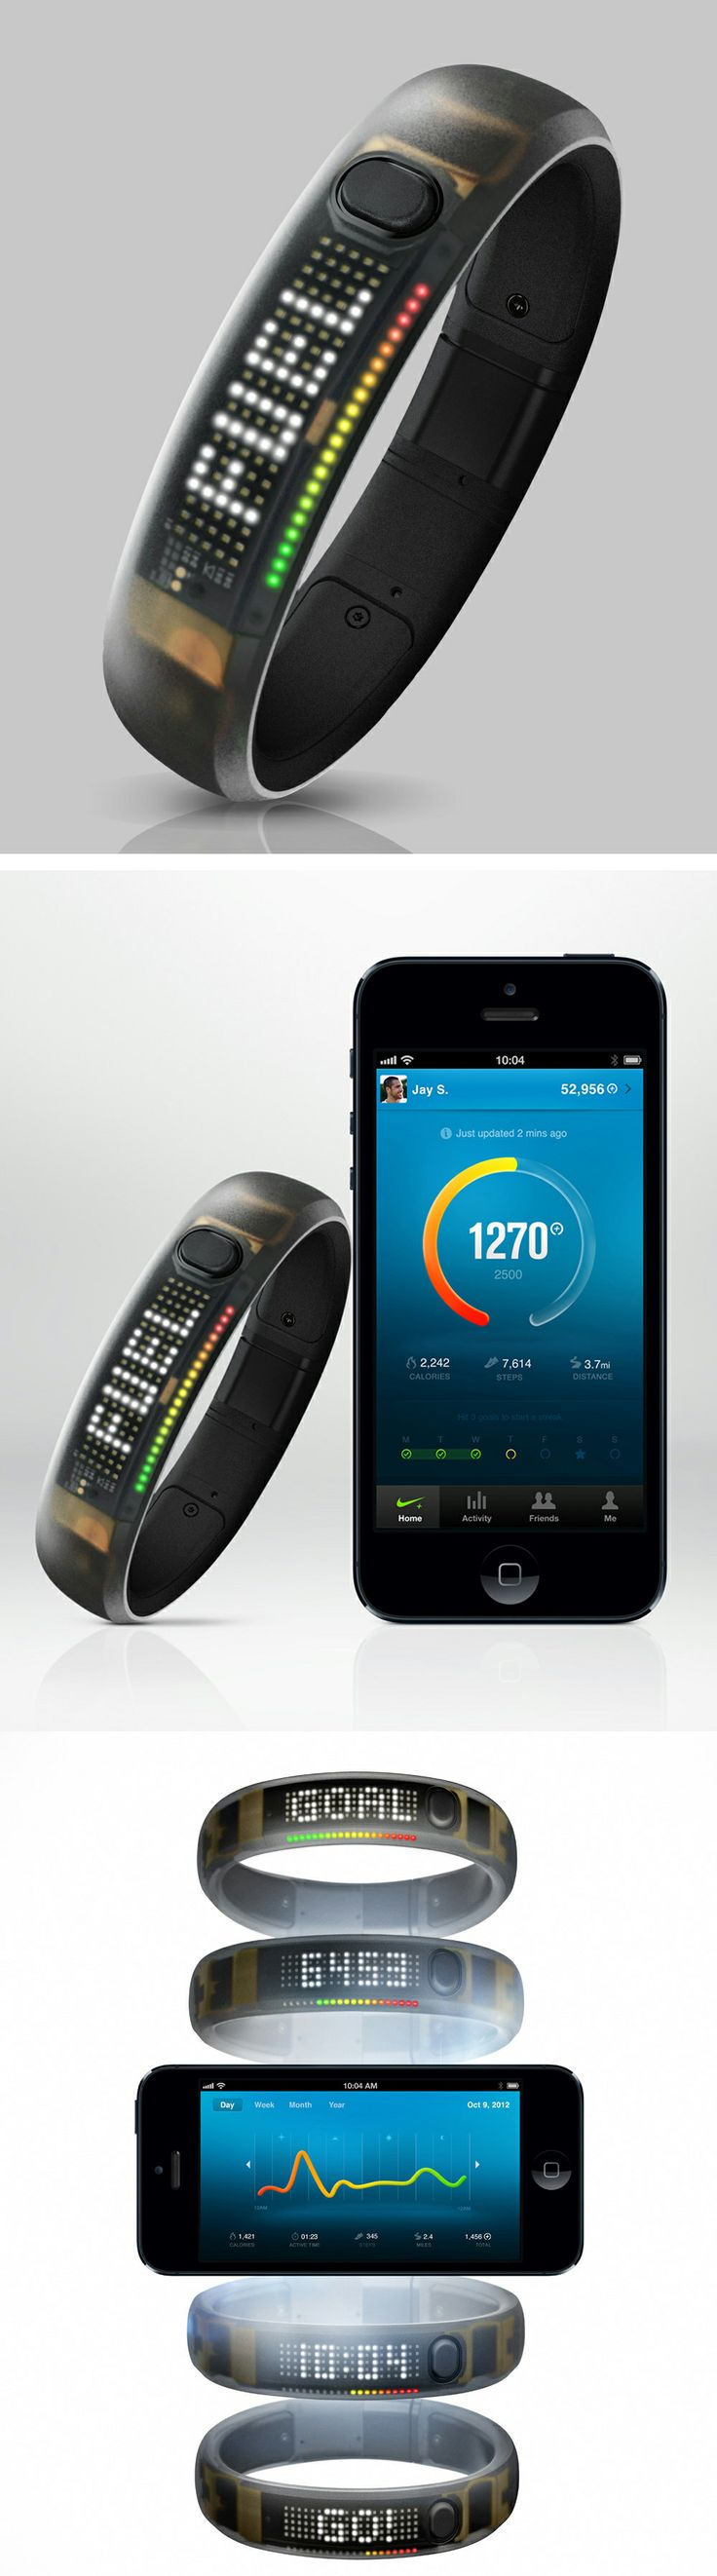 FuelBand - Bracelet that tracks your active life with NikeFuel— a universal way to measure movement for all kinds of activities. Set daily goal, get moving, and see your progress along the way. Download mobile app to sync wirelessly | $79